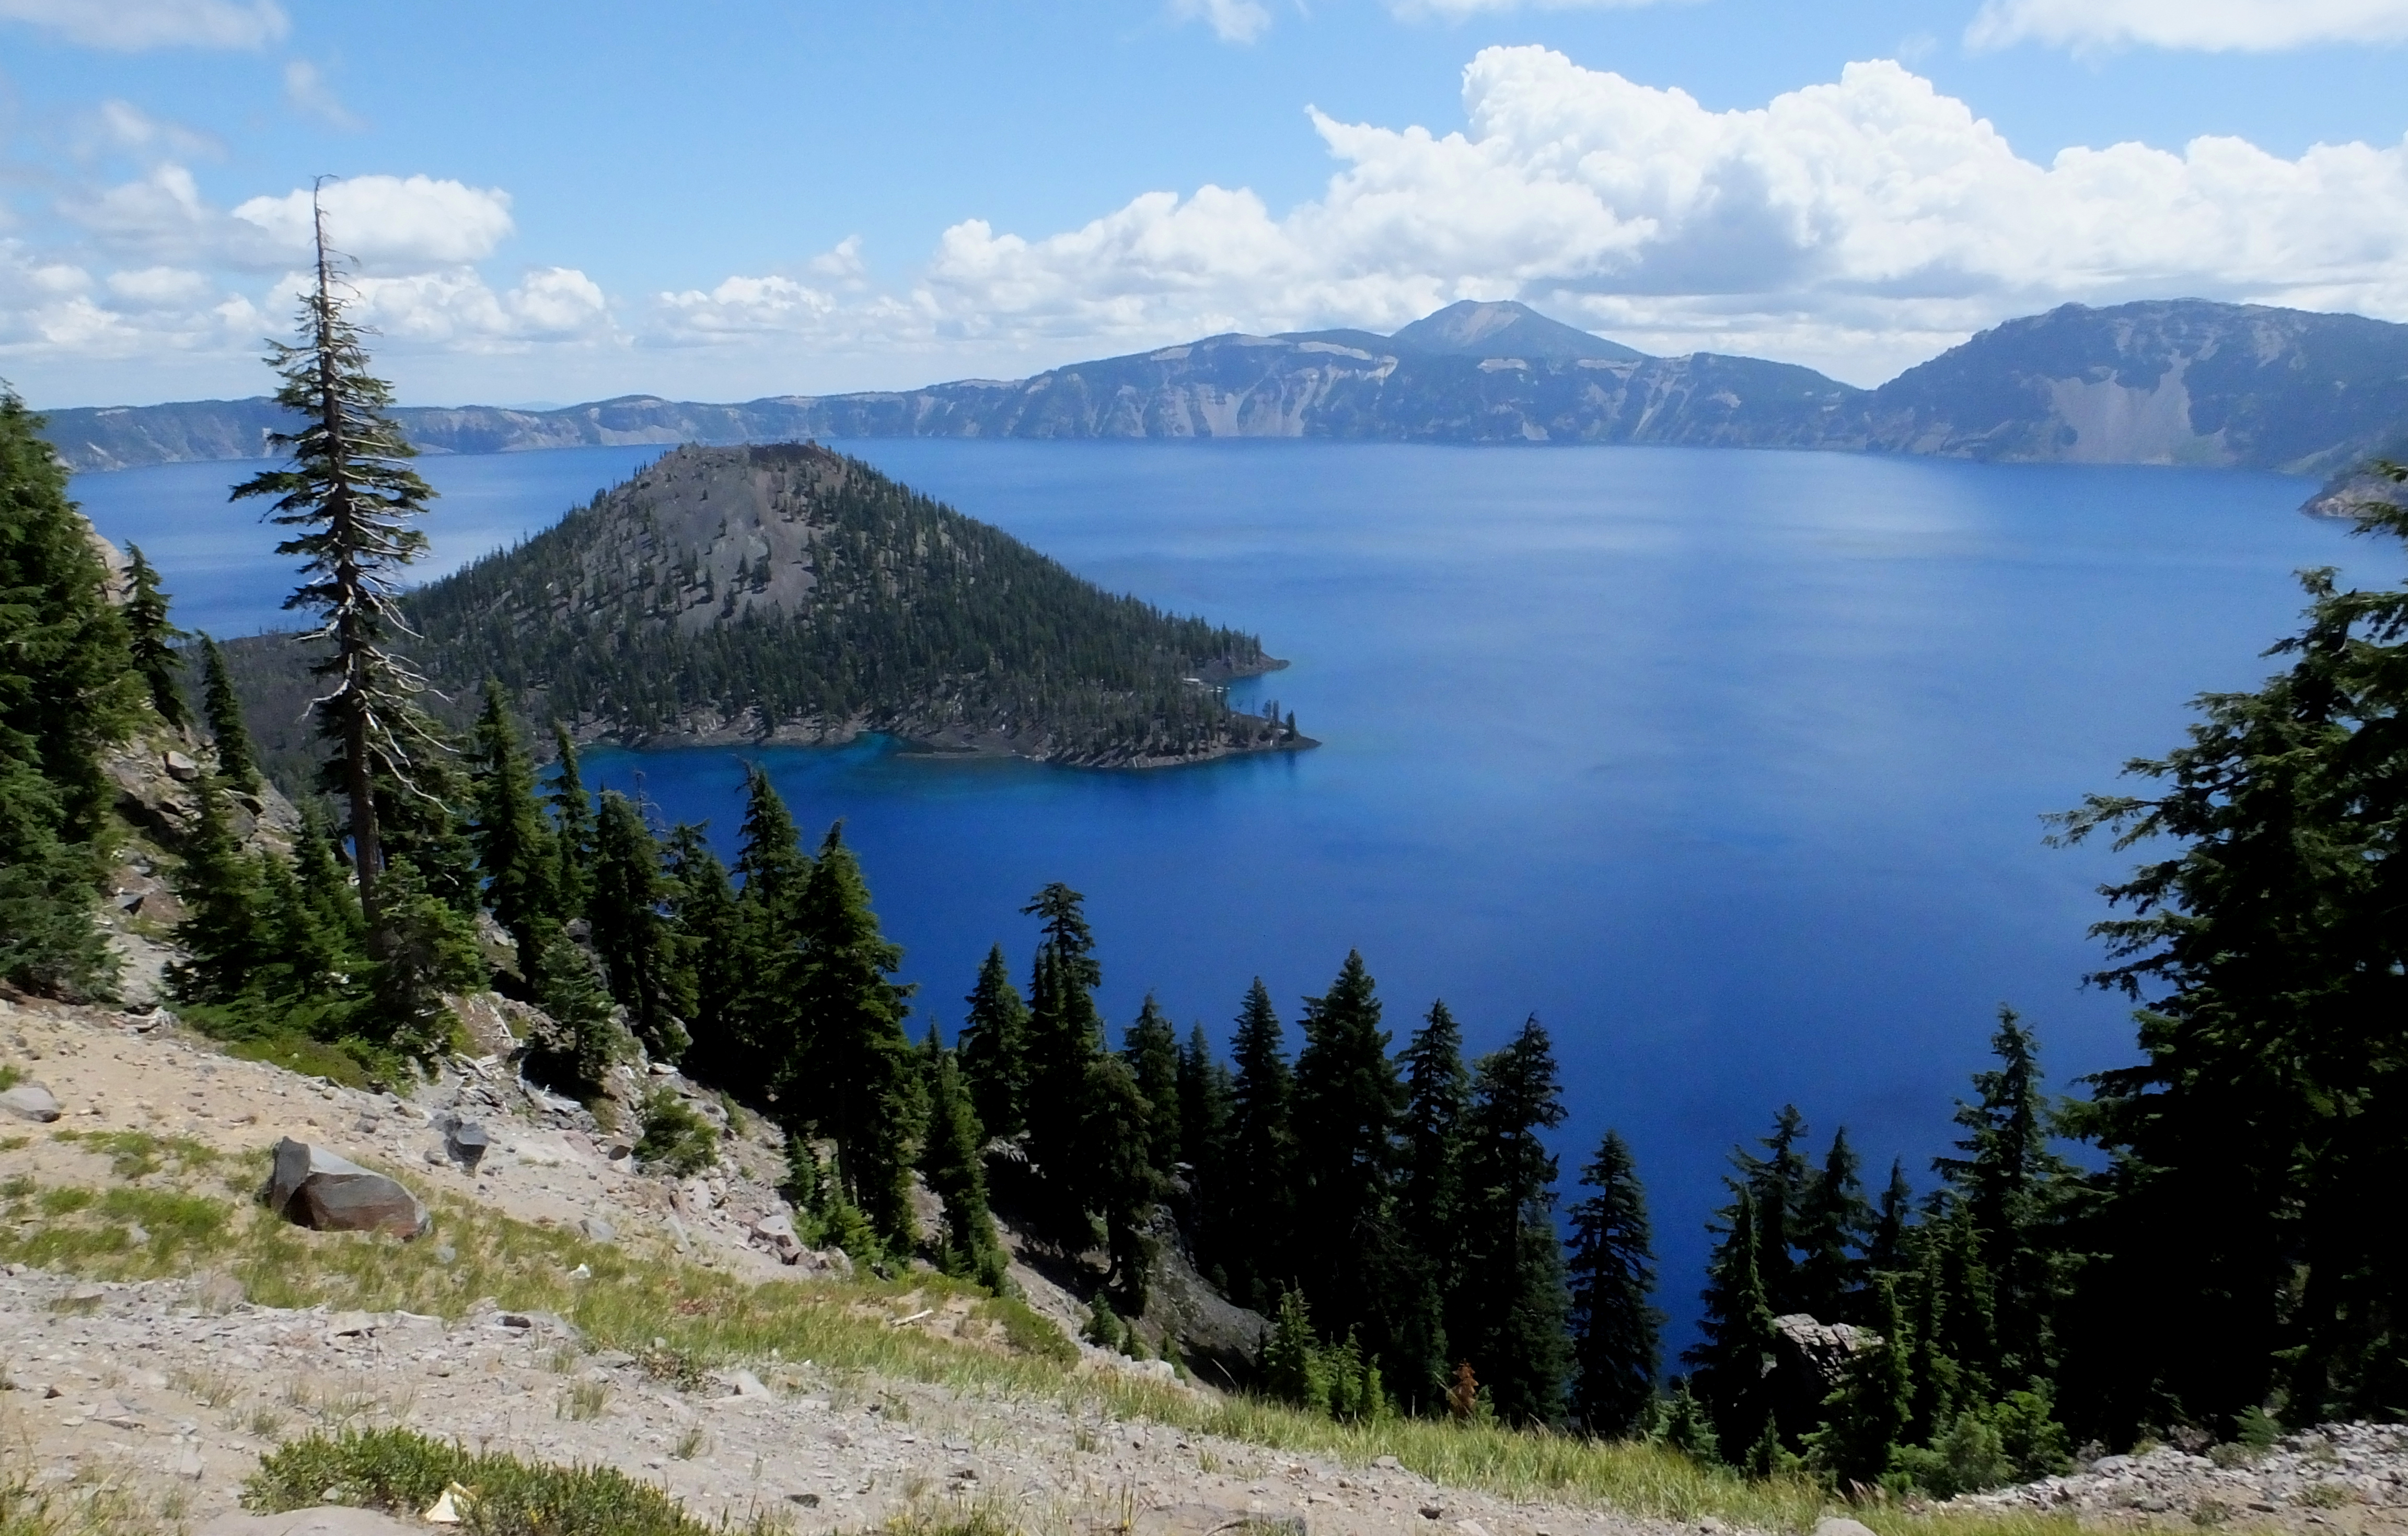 crater lake single men over 50 The single vehicle entrance fee would change from $15 to $25  fee increases proposed for crater lake national  where over 50 scholarships were awarded and cake .